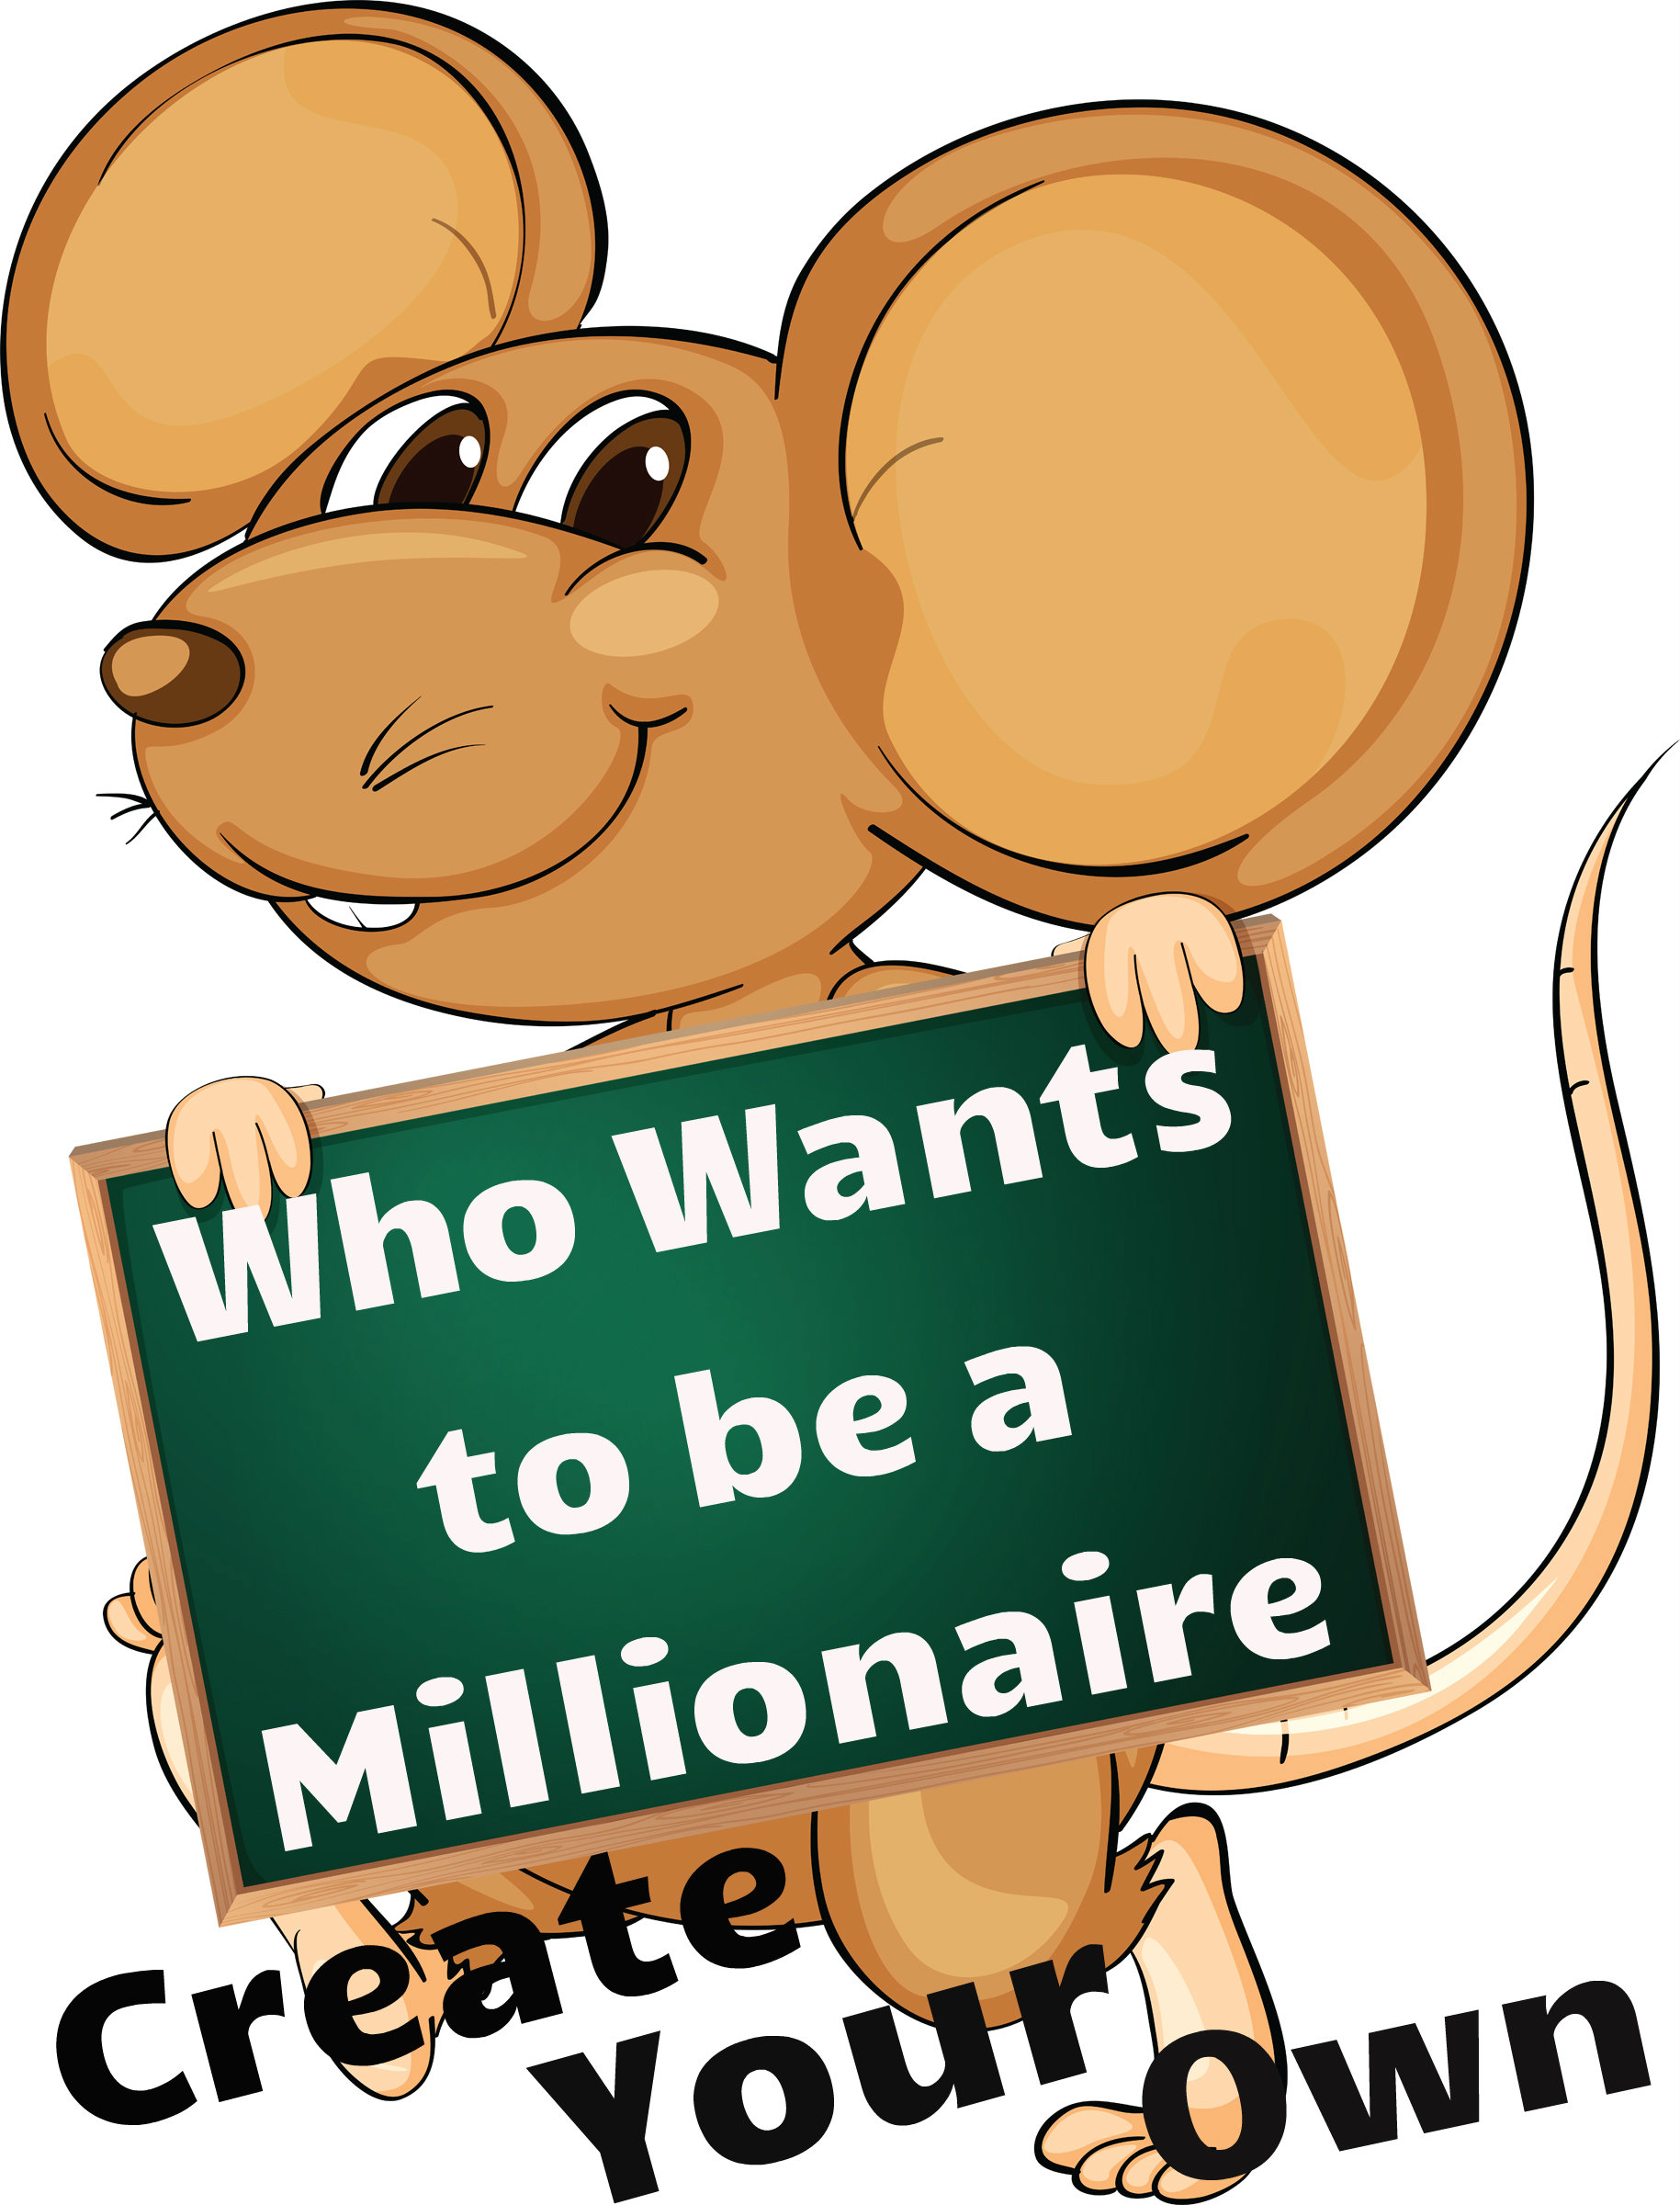 Who Want to be a Millionaire | Free Game Template | Readyteacher.com